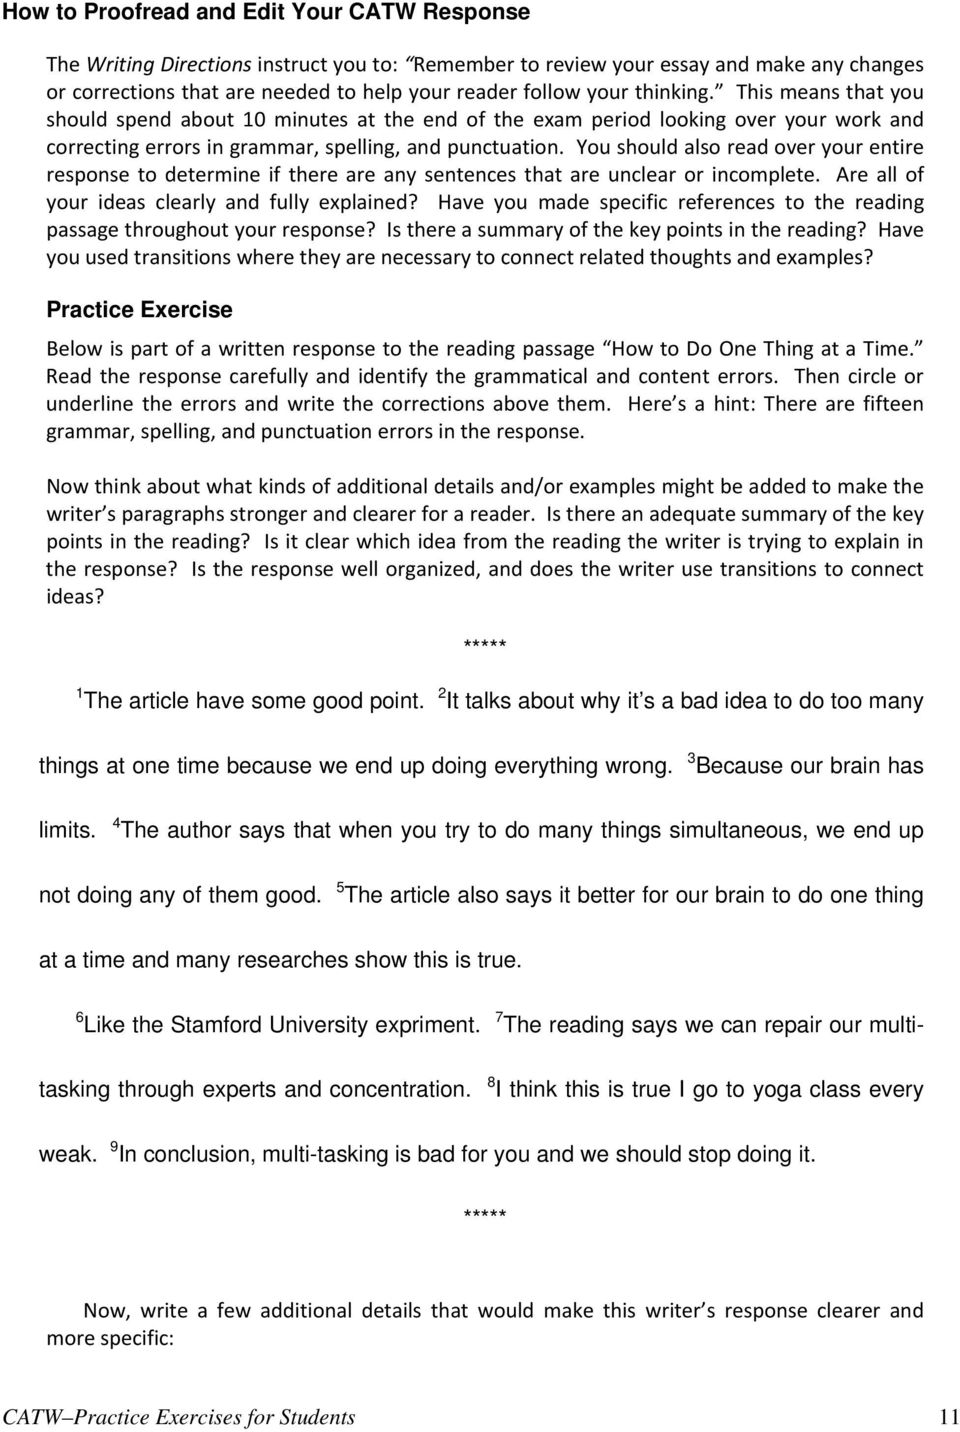 placement test essay writing Academic writing 60 minutes 1 survey item choose one of three essays the exam consists of a written essay your essay will be evaluated in determining your writing placement.